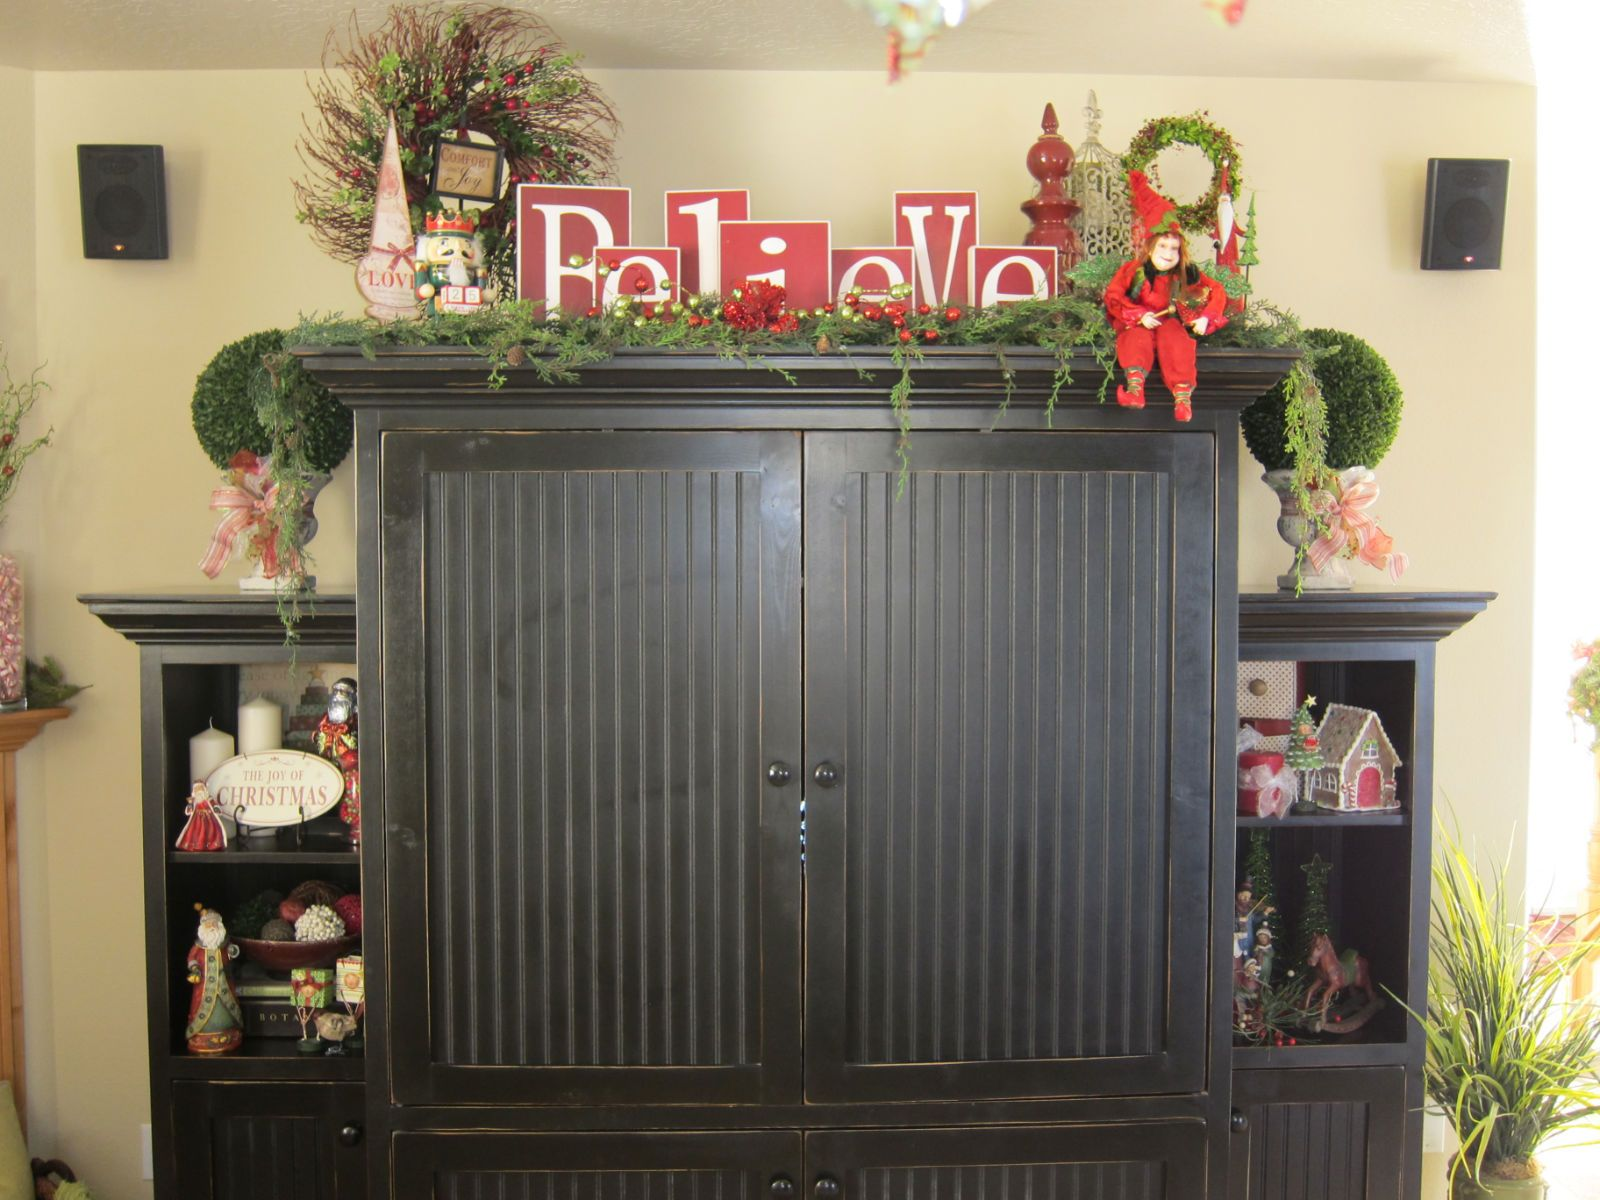 decorating top of china cabinet | Primitive decorating ...